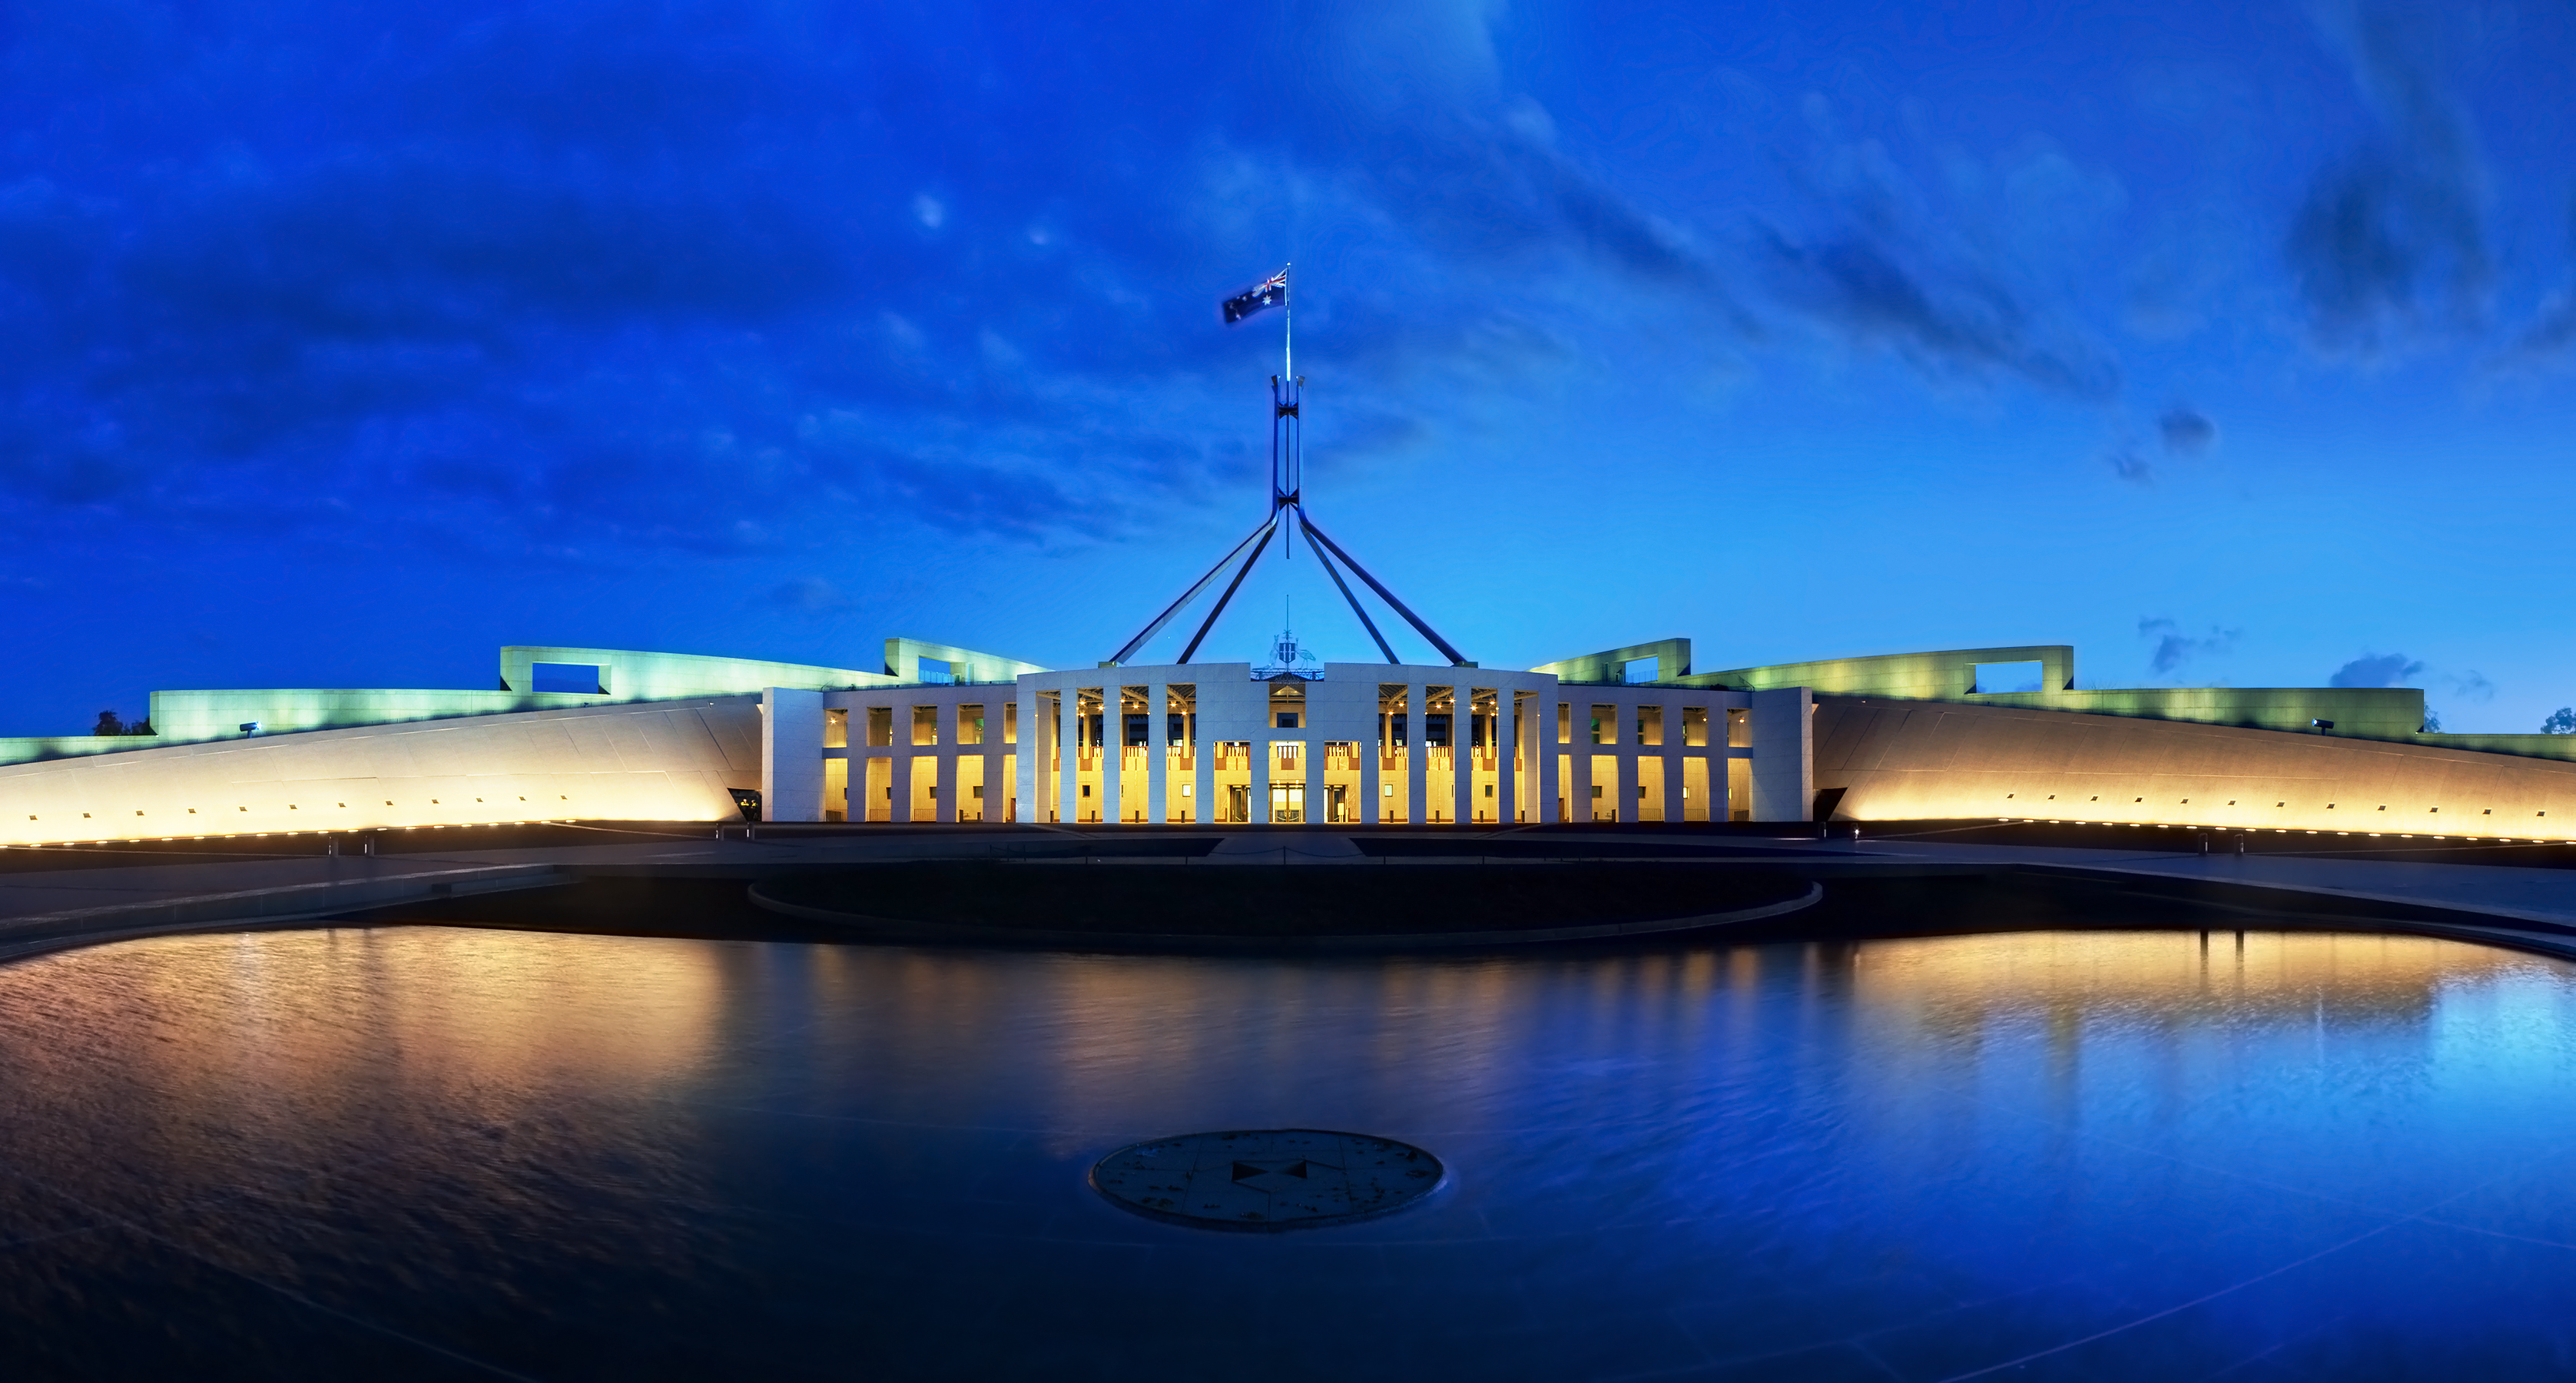 Canberra The best lighting design stores in  Canberra The best lighting design stores in Canberra